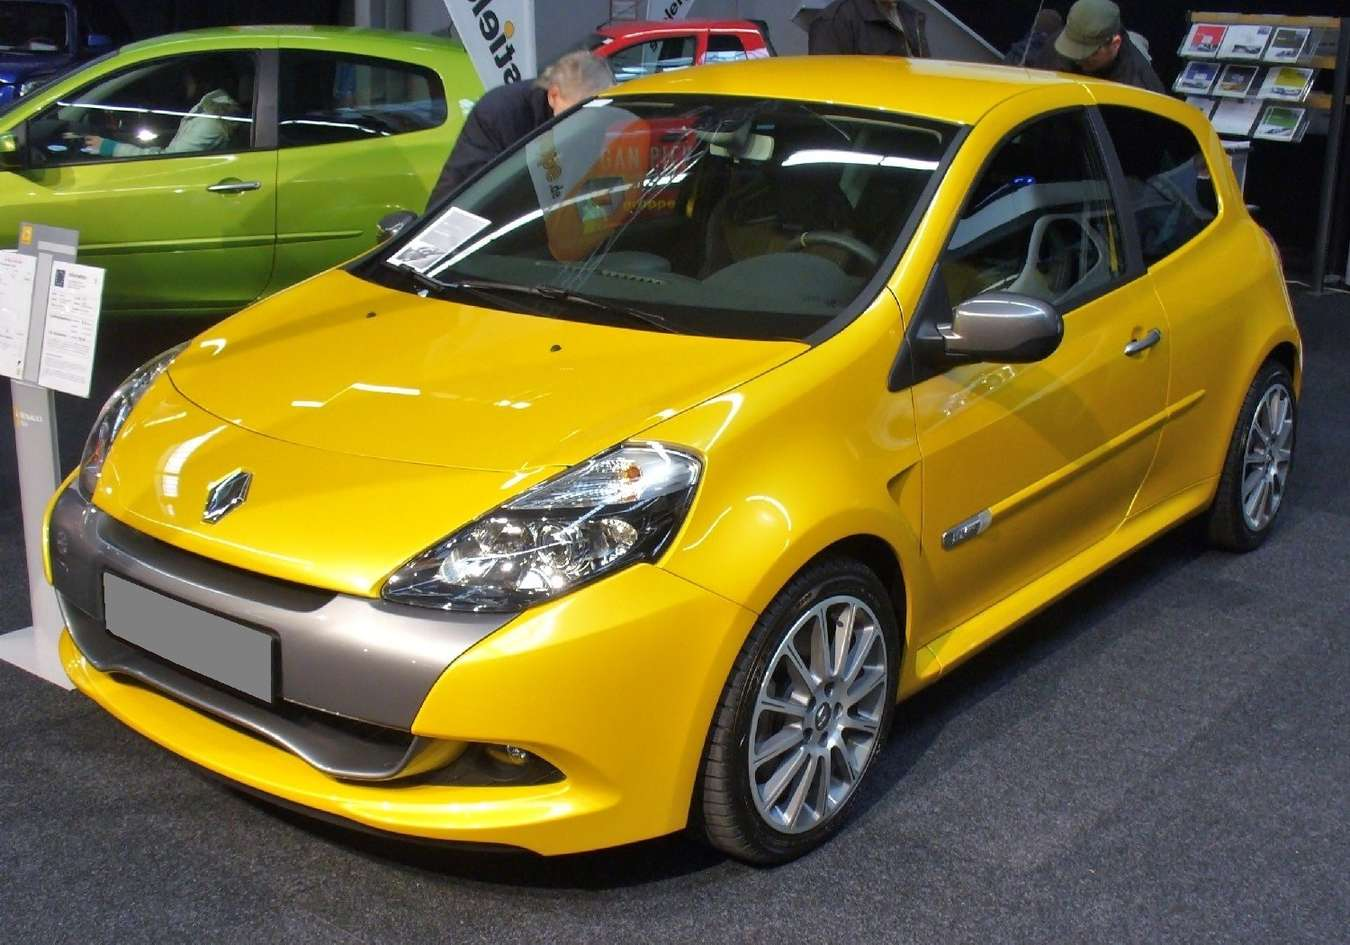 Renault Clio RS #7012239